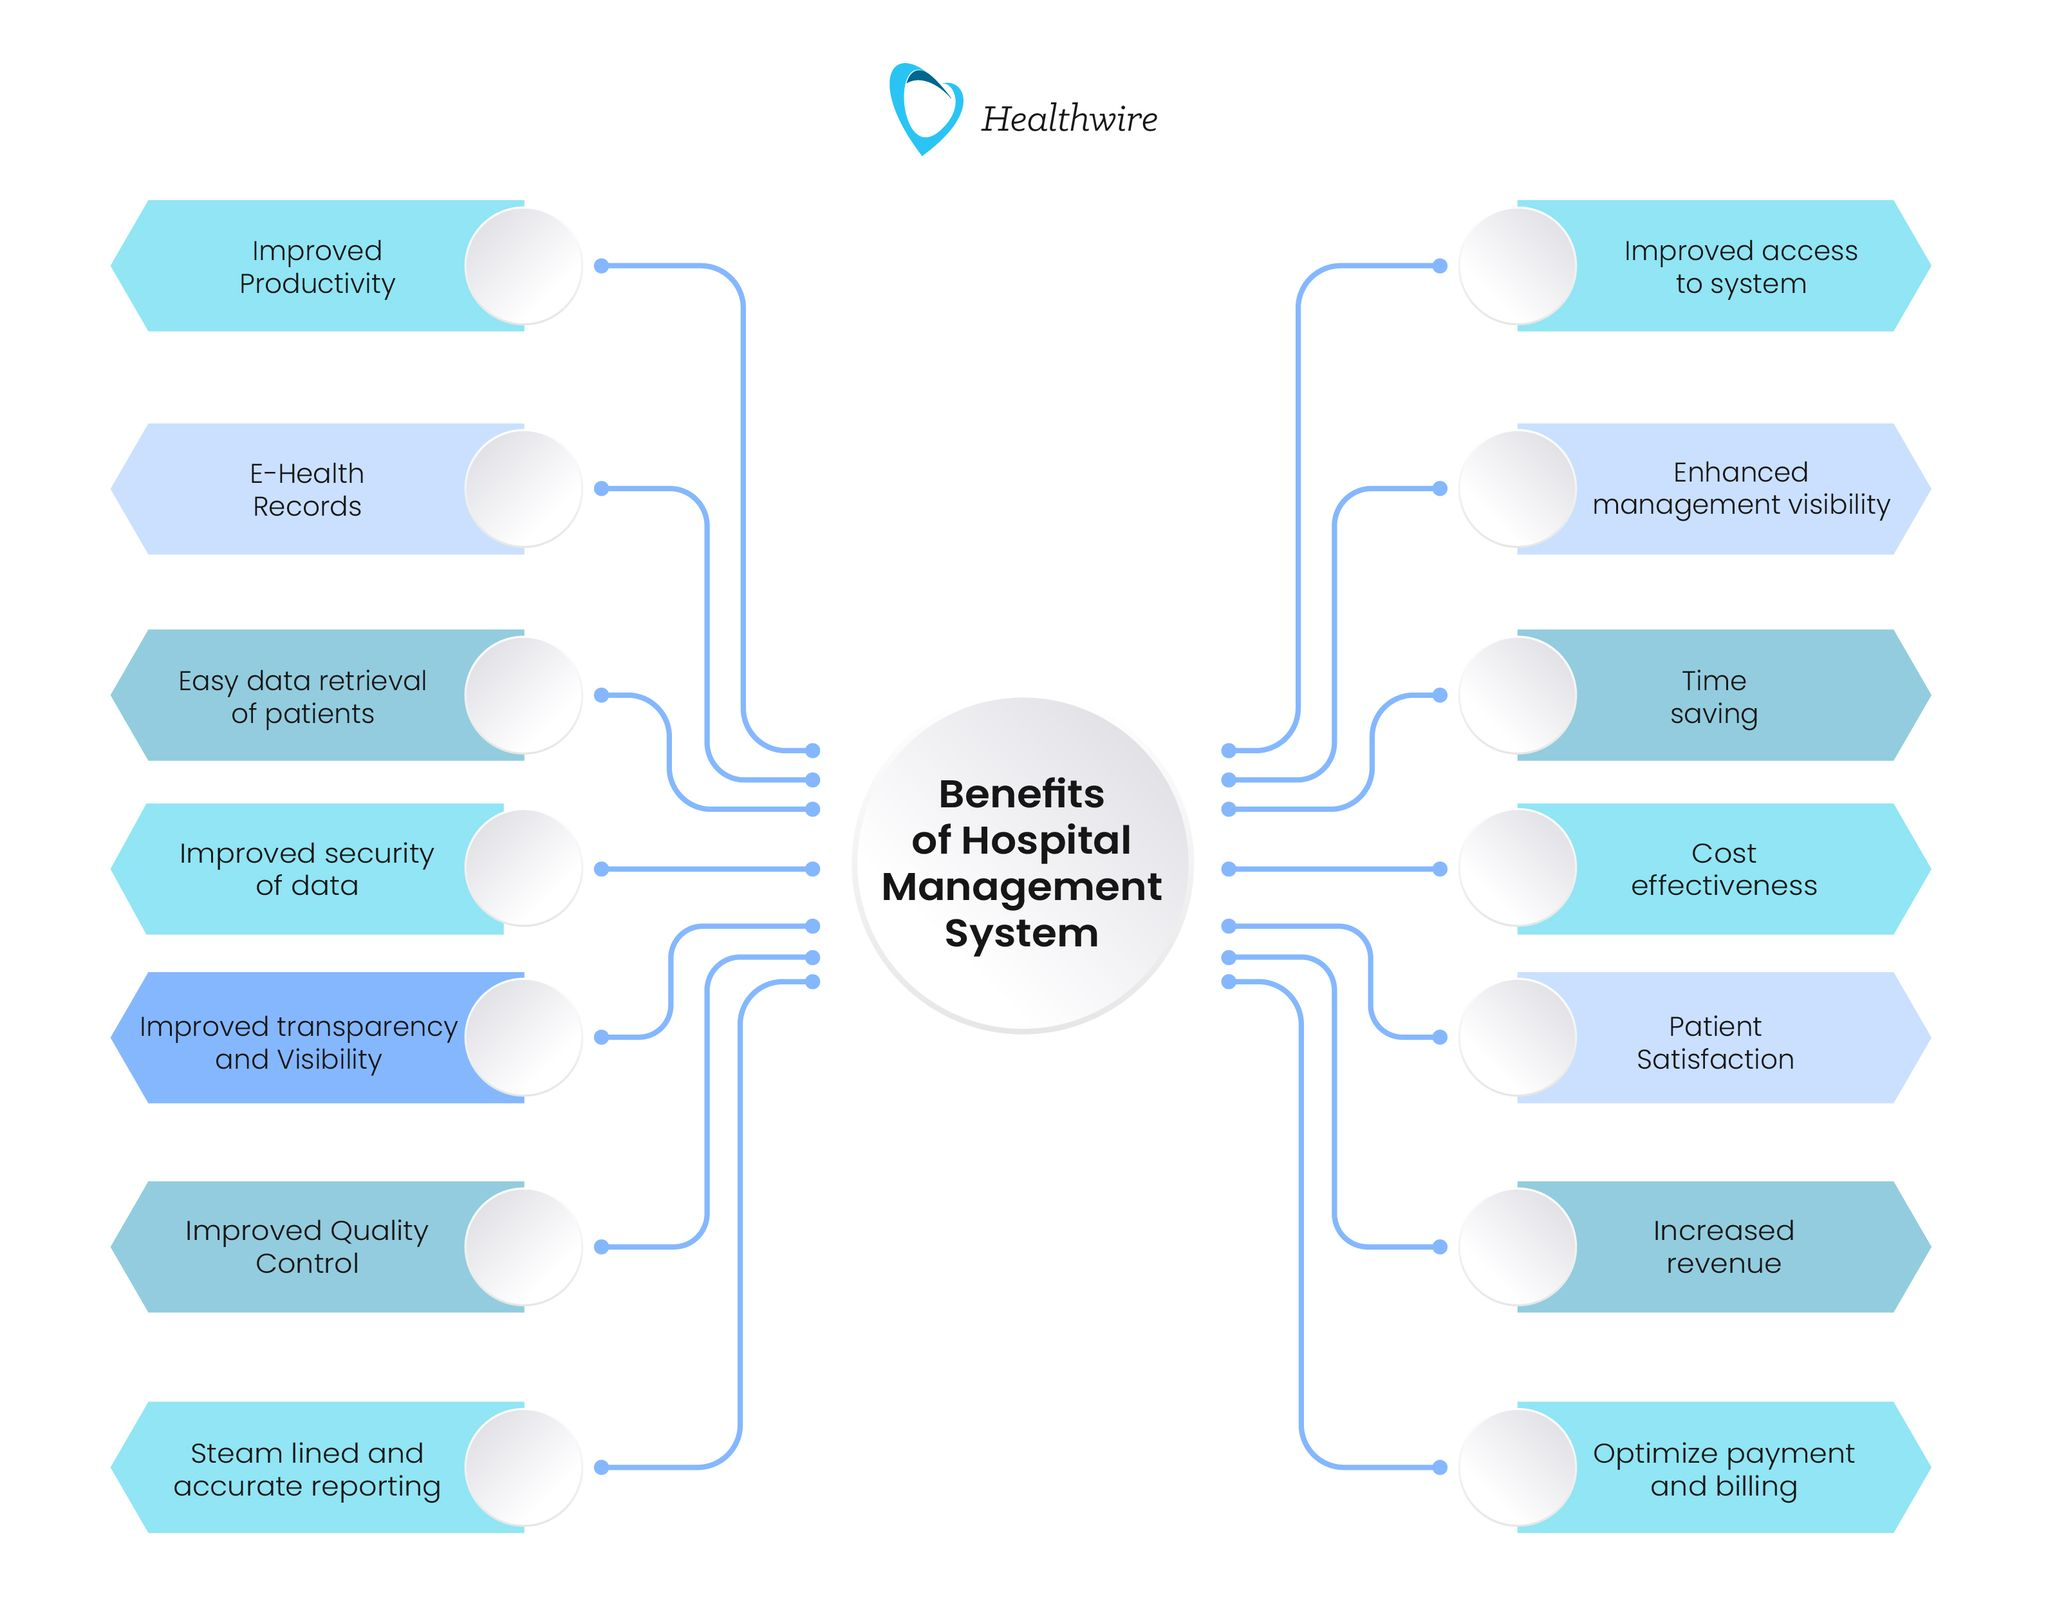 Benefits and Advantages of Hospital Management System